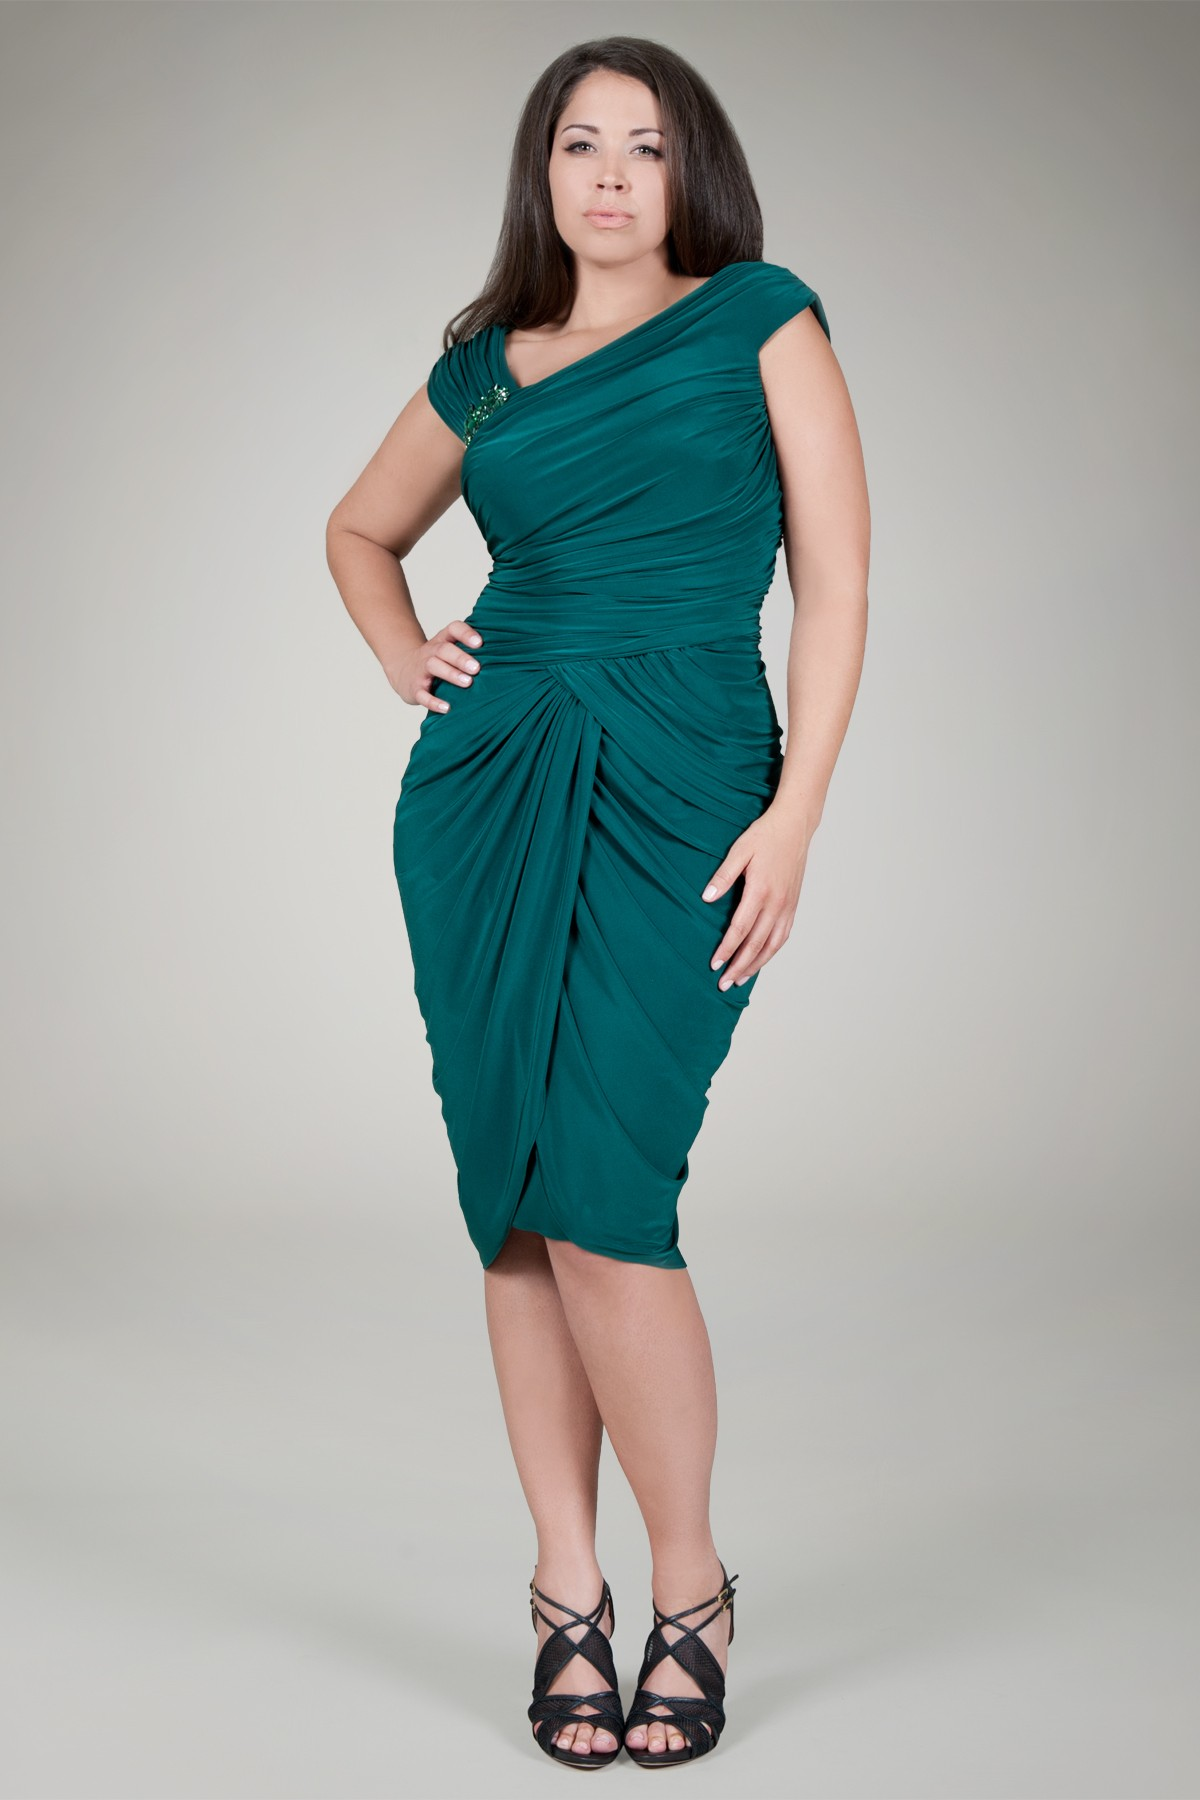 dresses to wear to a wedding plus size choice image - dresses